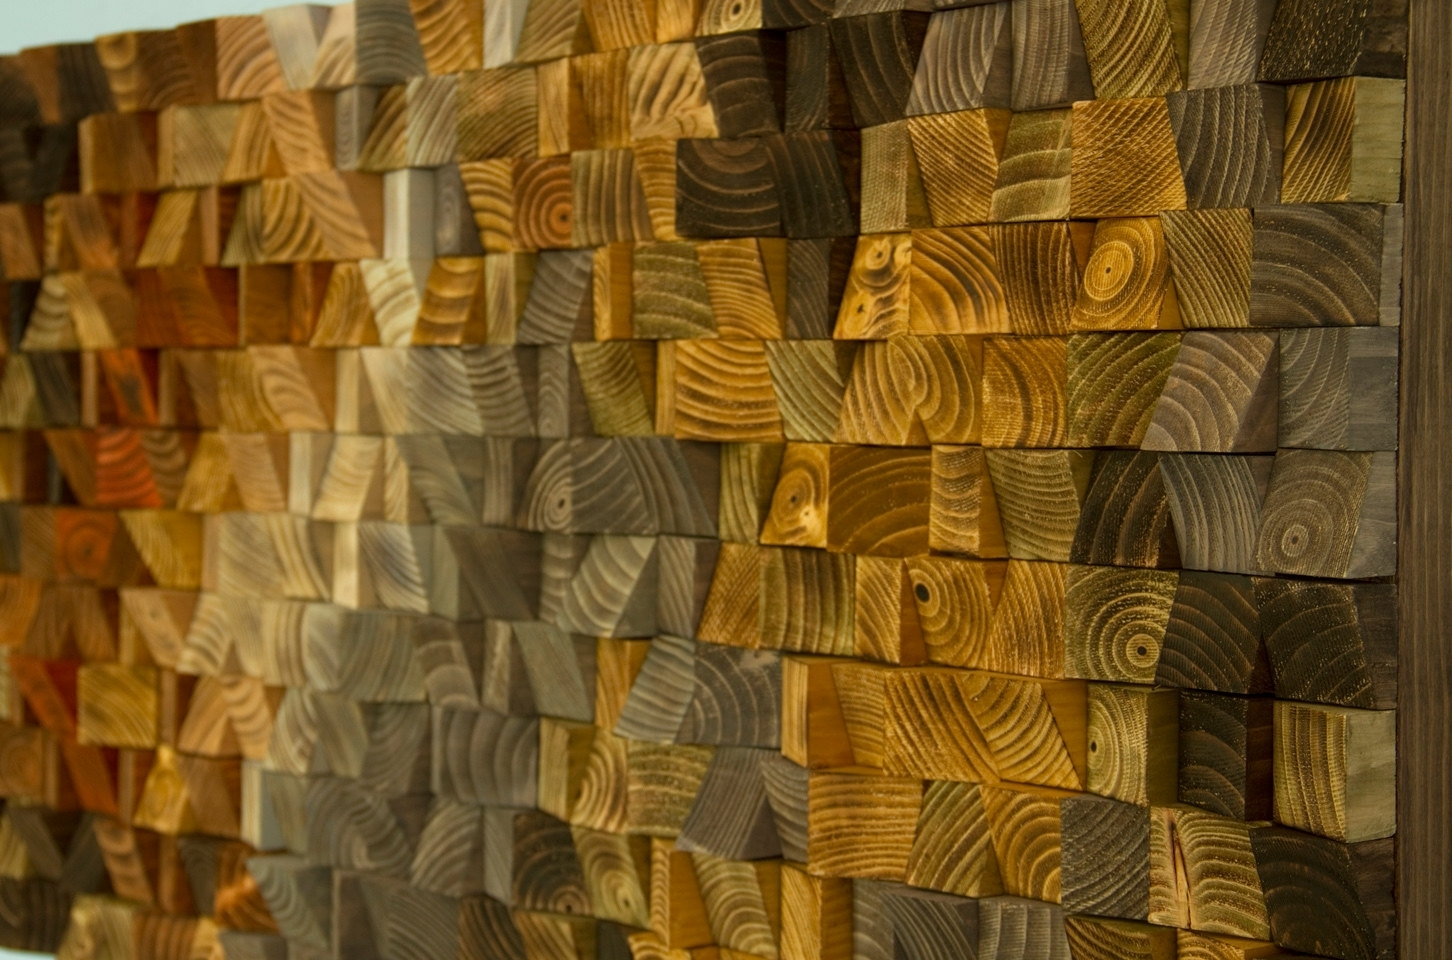 Rustic Wood Wall Art, Wood Wall Sculpture, Abstract Wood Art Mosaic Intended For Most Recently Released Abstract Mosaic Art On Wall (View 19 of 20)